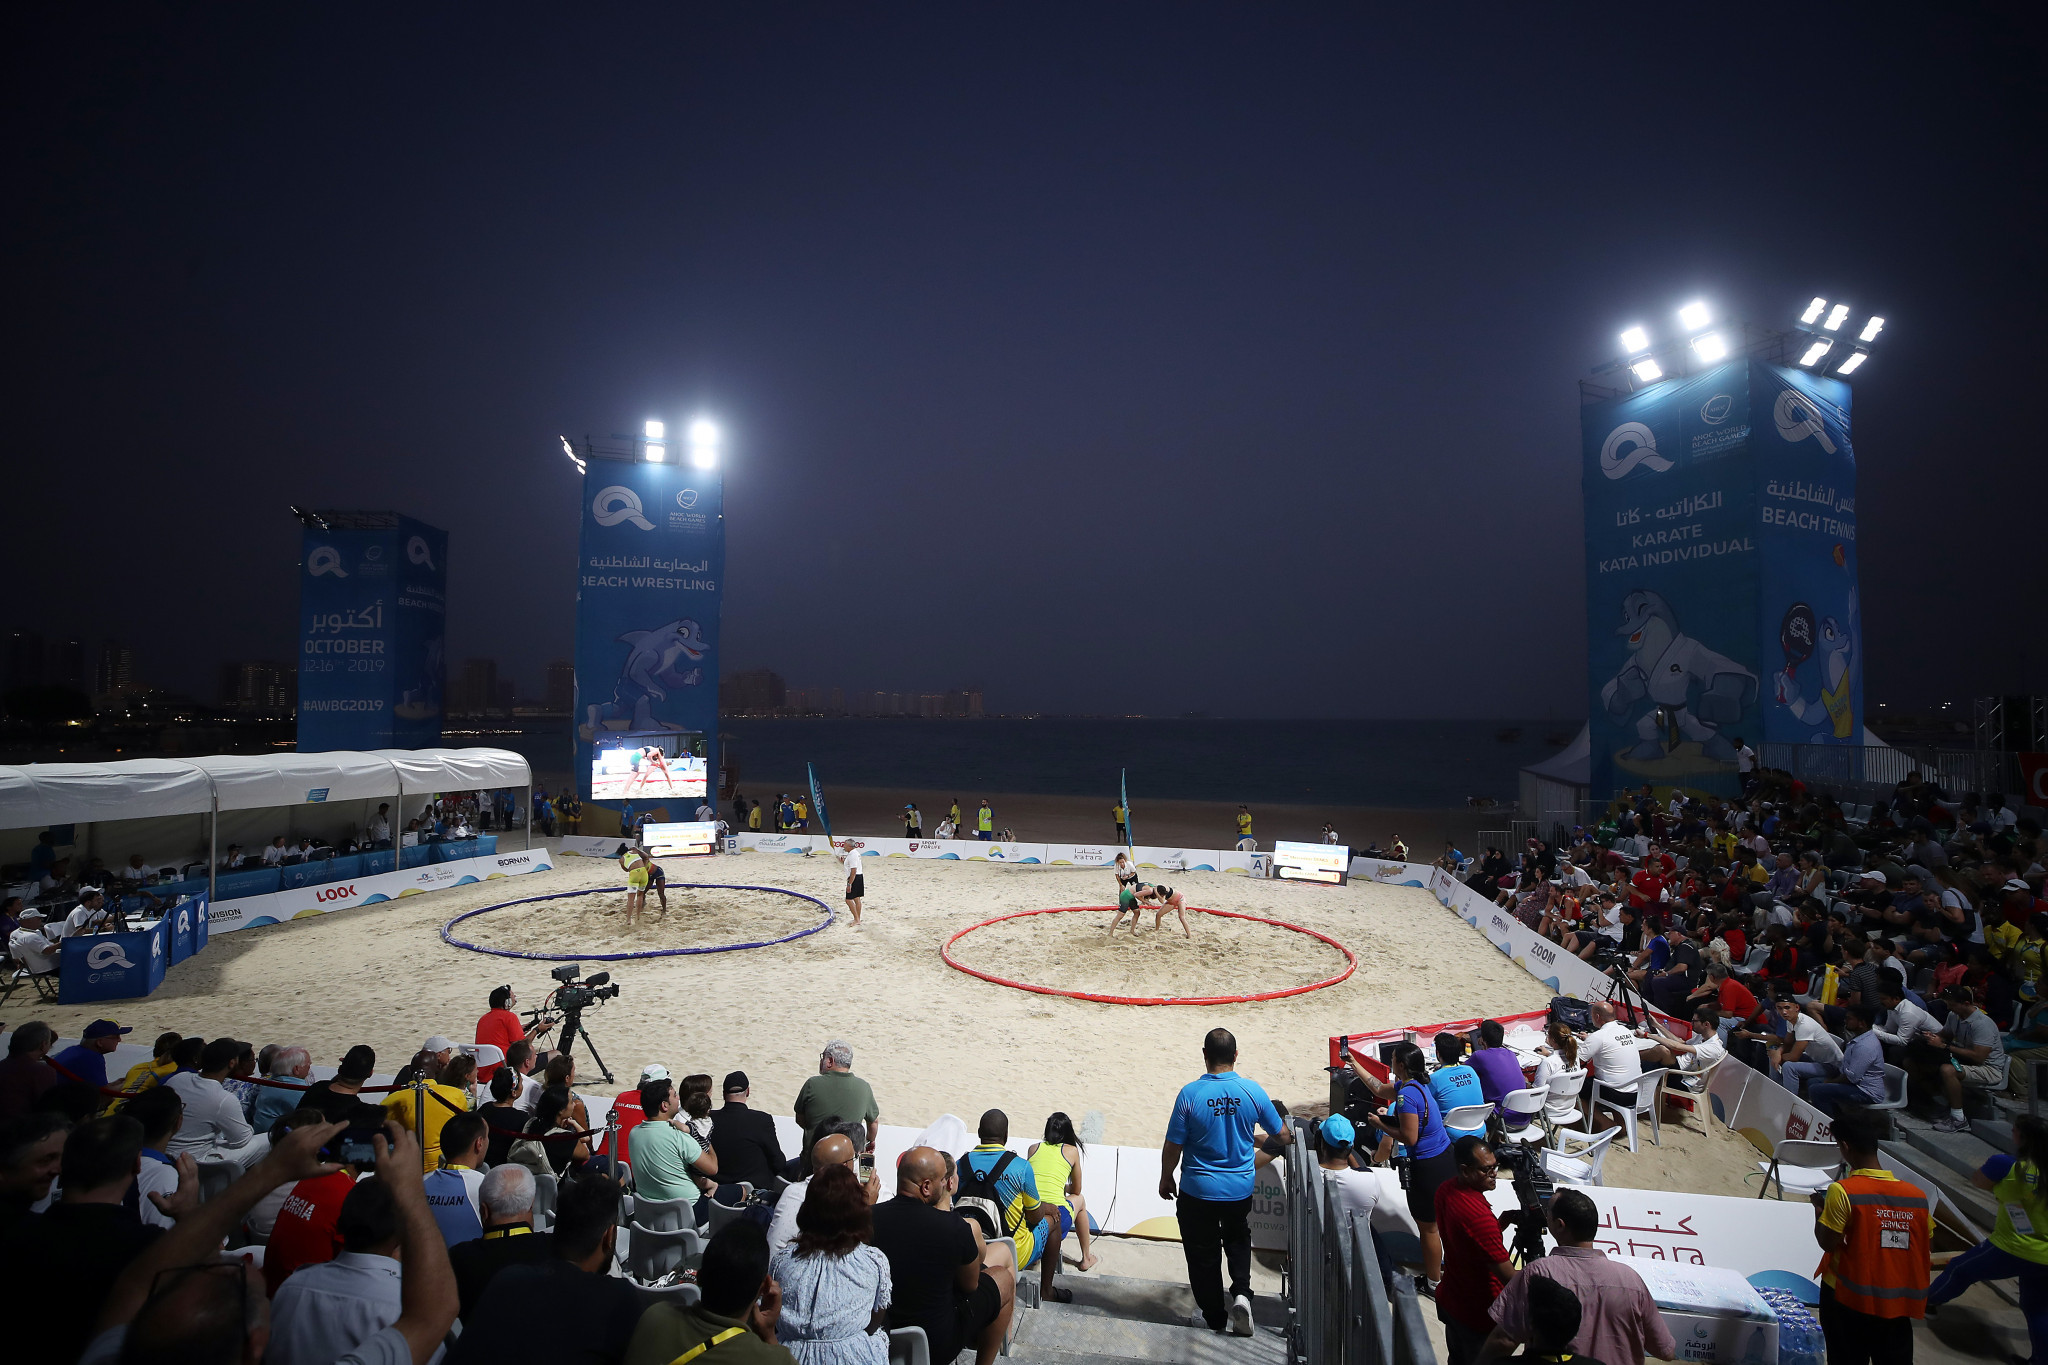 Two positive doping cases involved beach wrestlers at the ANOC World Beach Games ©ANOC